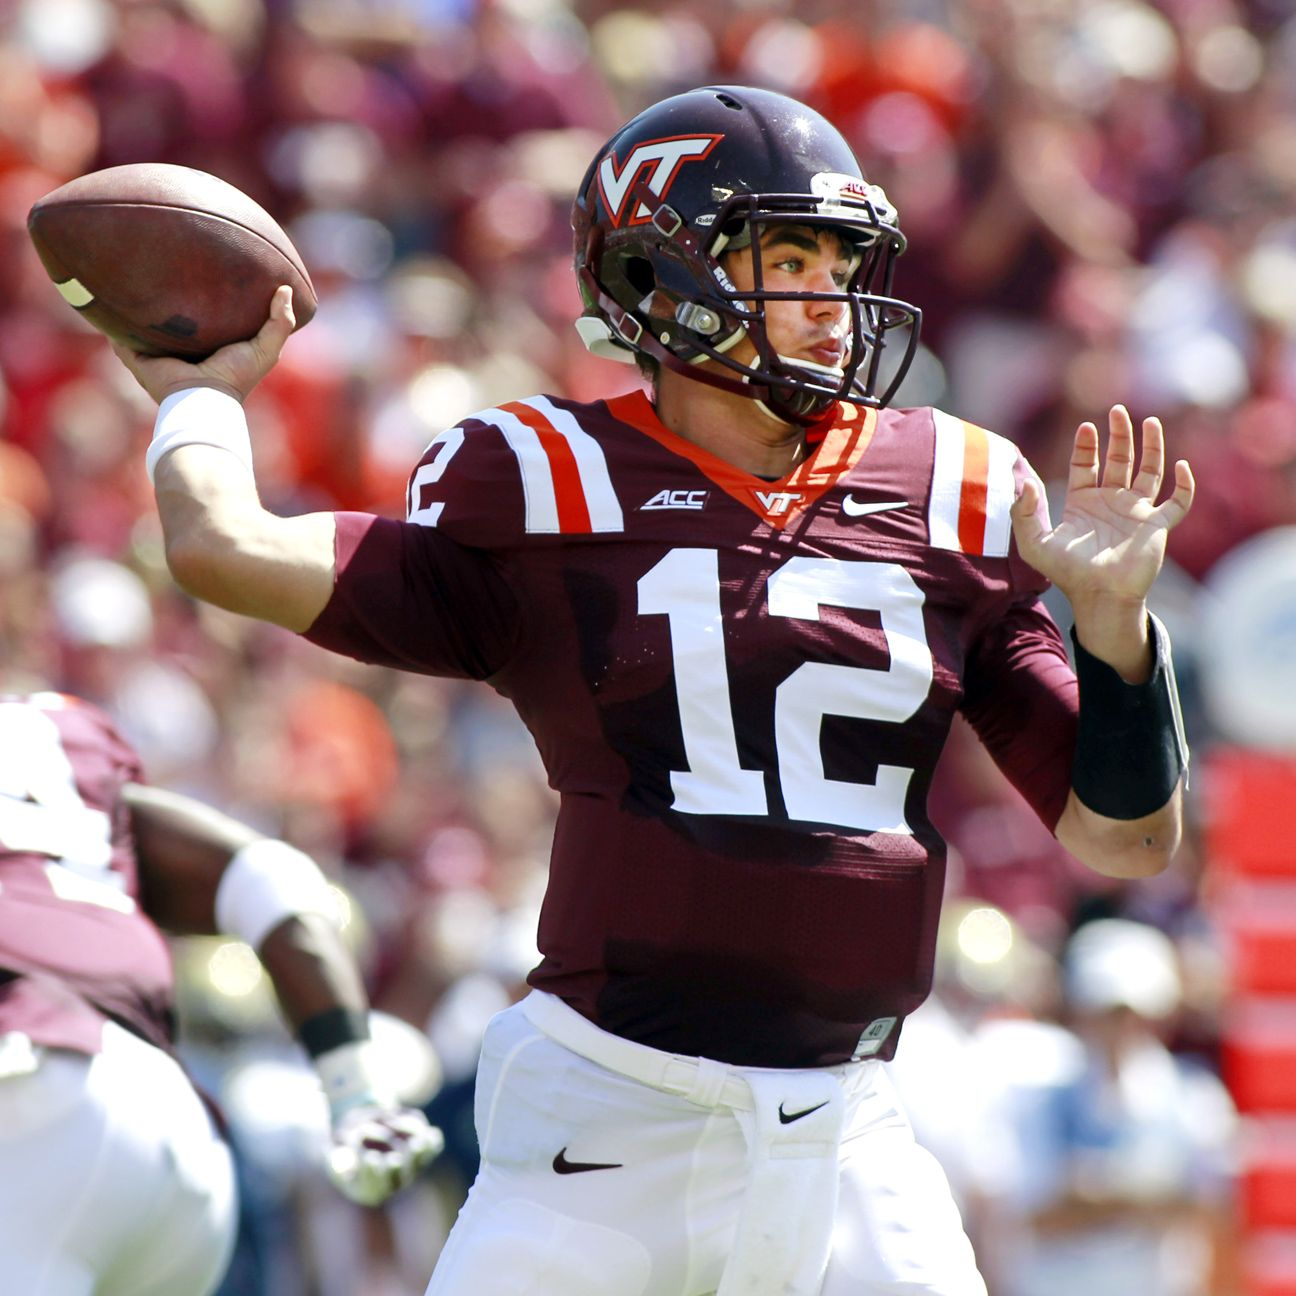 Virginia Tech QB Brewer cleared to practice Mississippi